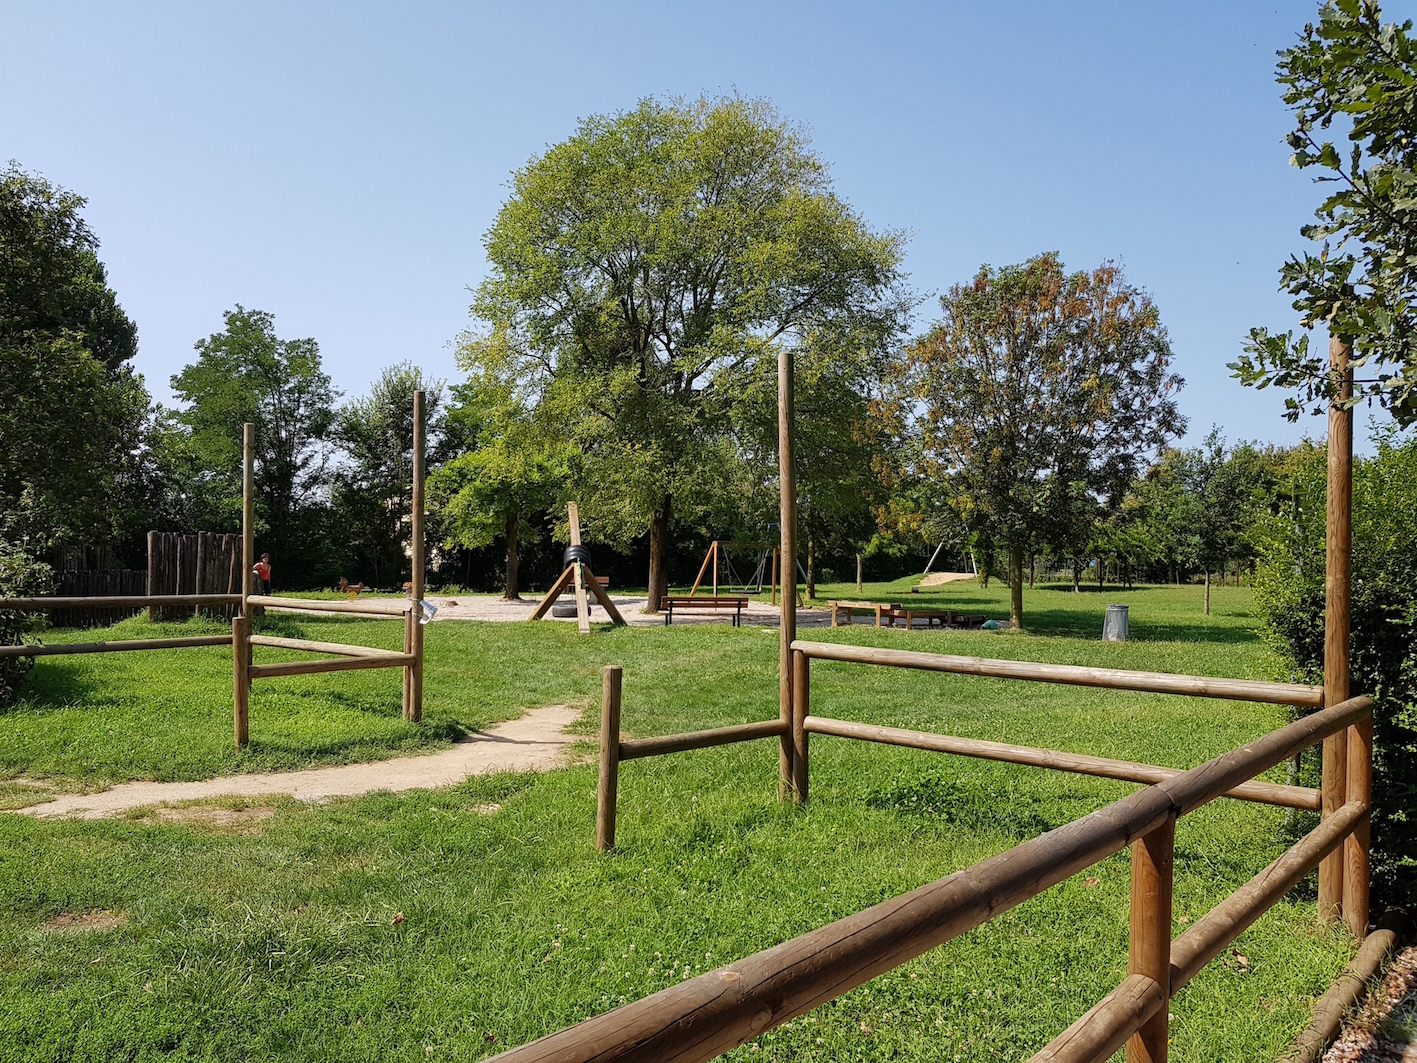 Ethnographic park - family area, with games and shade, meeting place for numerous families of the territory, of various nationalities, without any conflict. Definitely a place for meeting and integration.